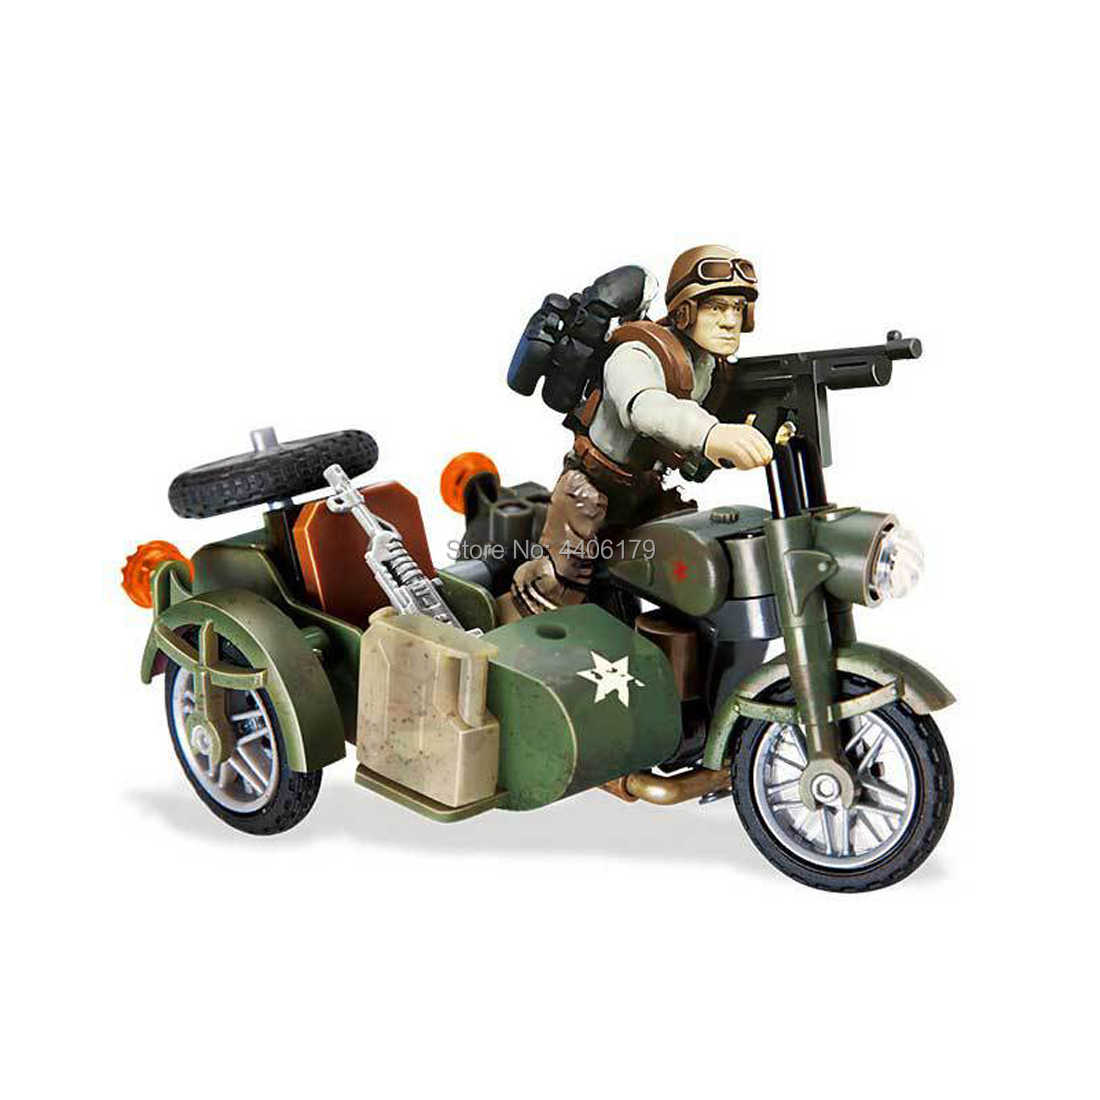 hot military ww2 motorcycle cavalry Assault war Building Blocks soldier figures weapons moc model bricks toys for children gift